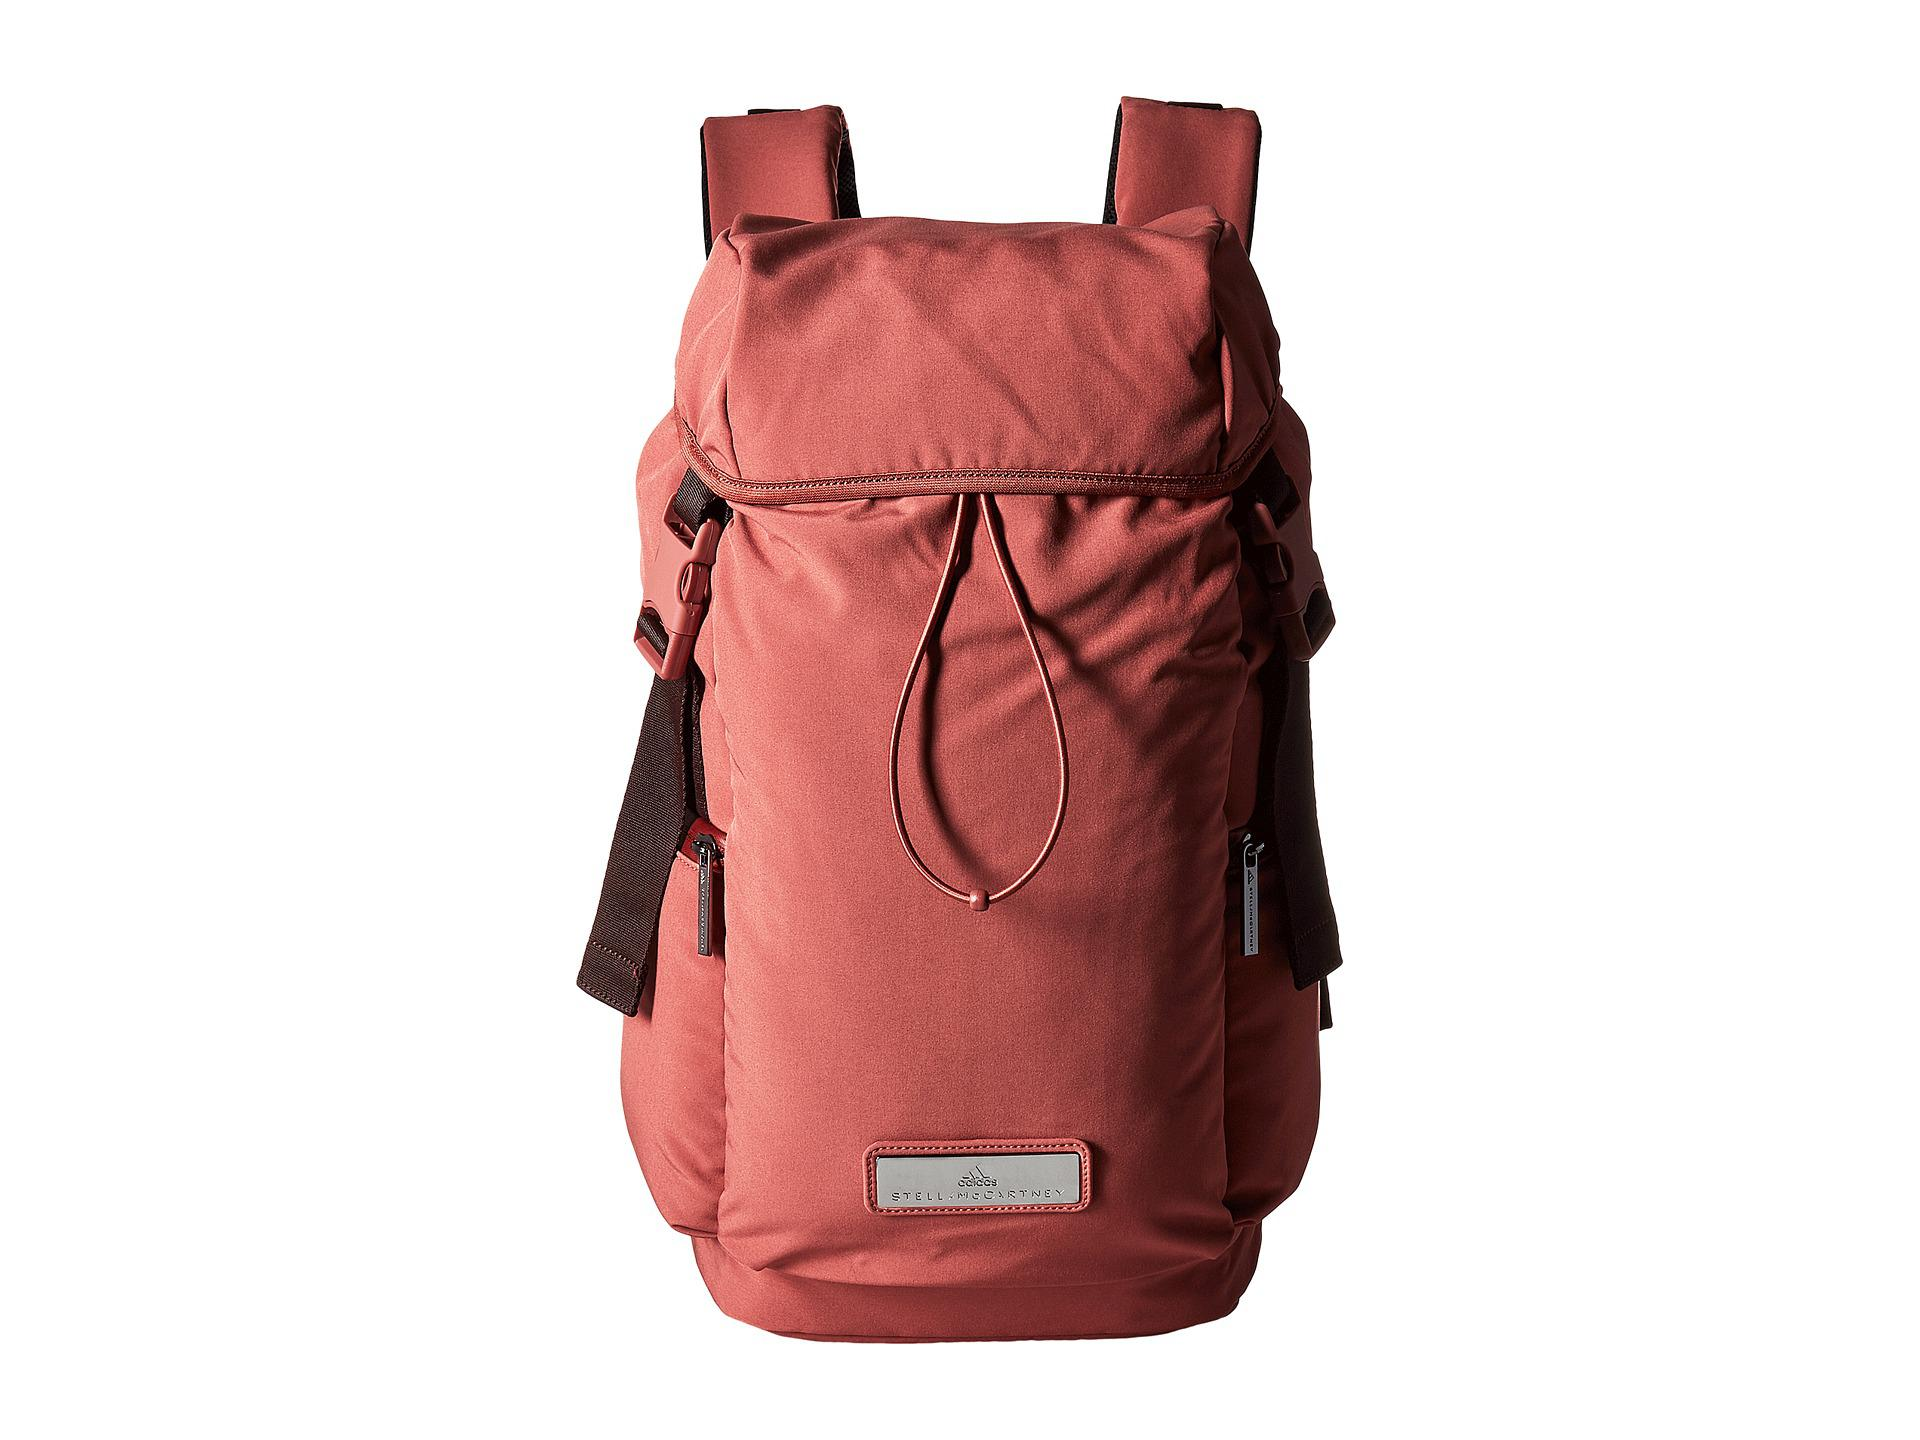 86fd9b99e4 Lyst - adidas By Stella McCartney Athletics Large Backpack in Red